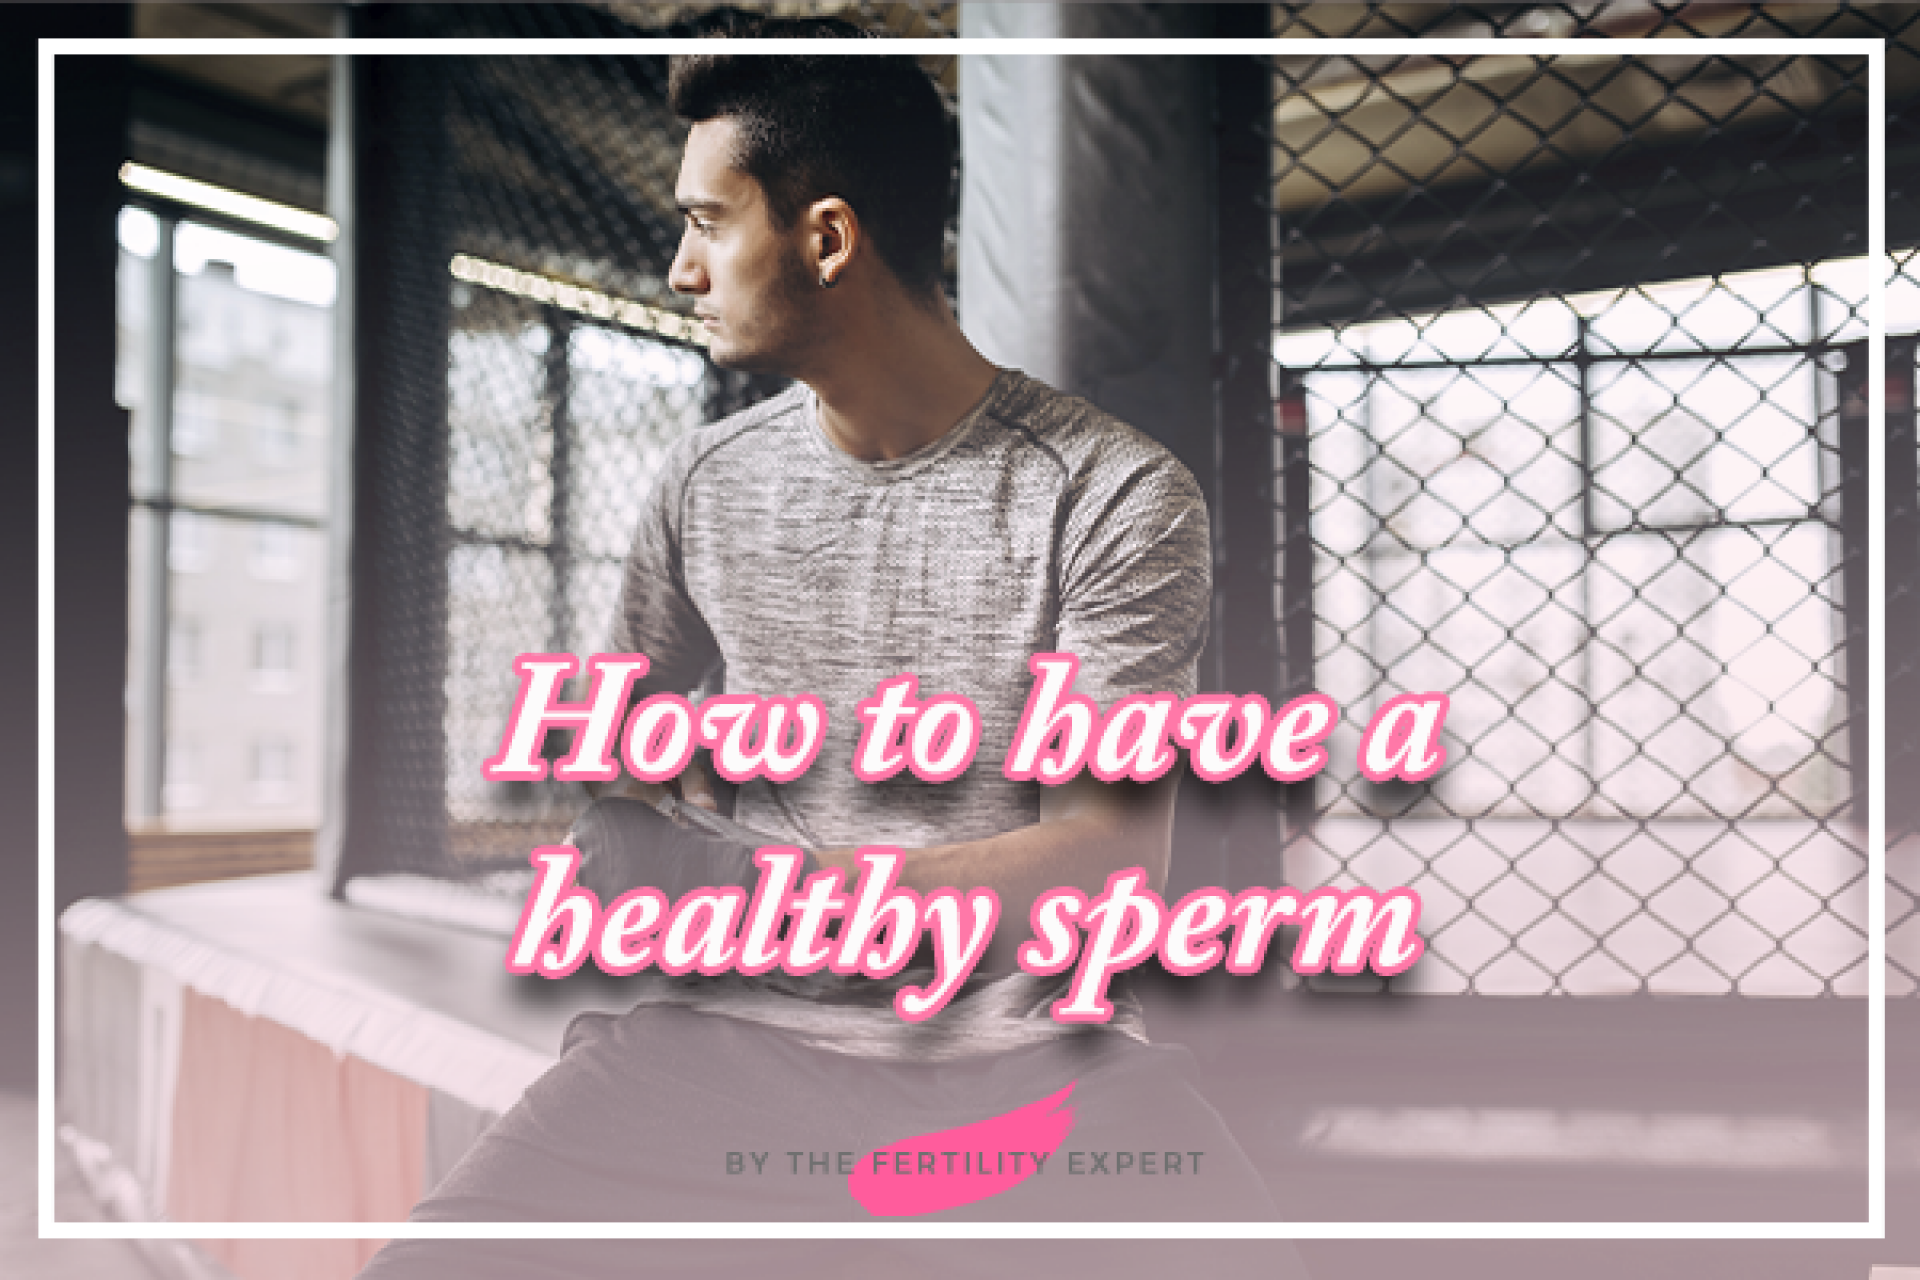 How to have healthy sperm: Turbo-boost your sperm to help with getting pregnant